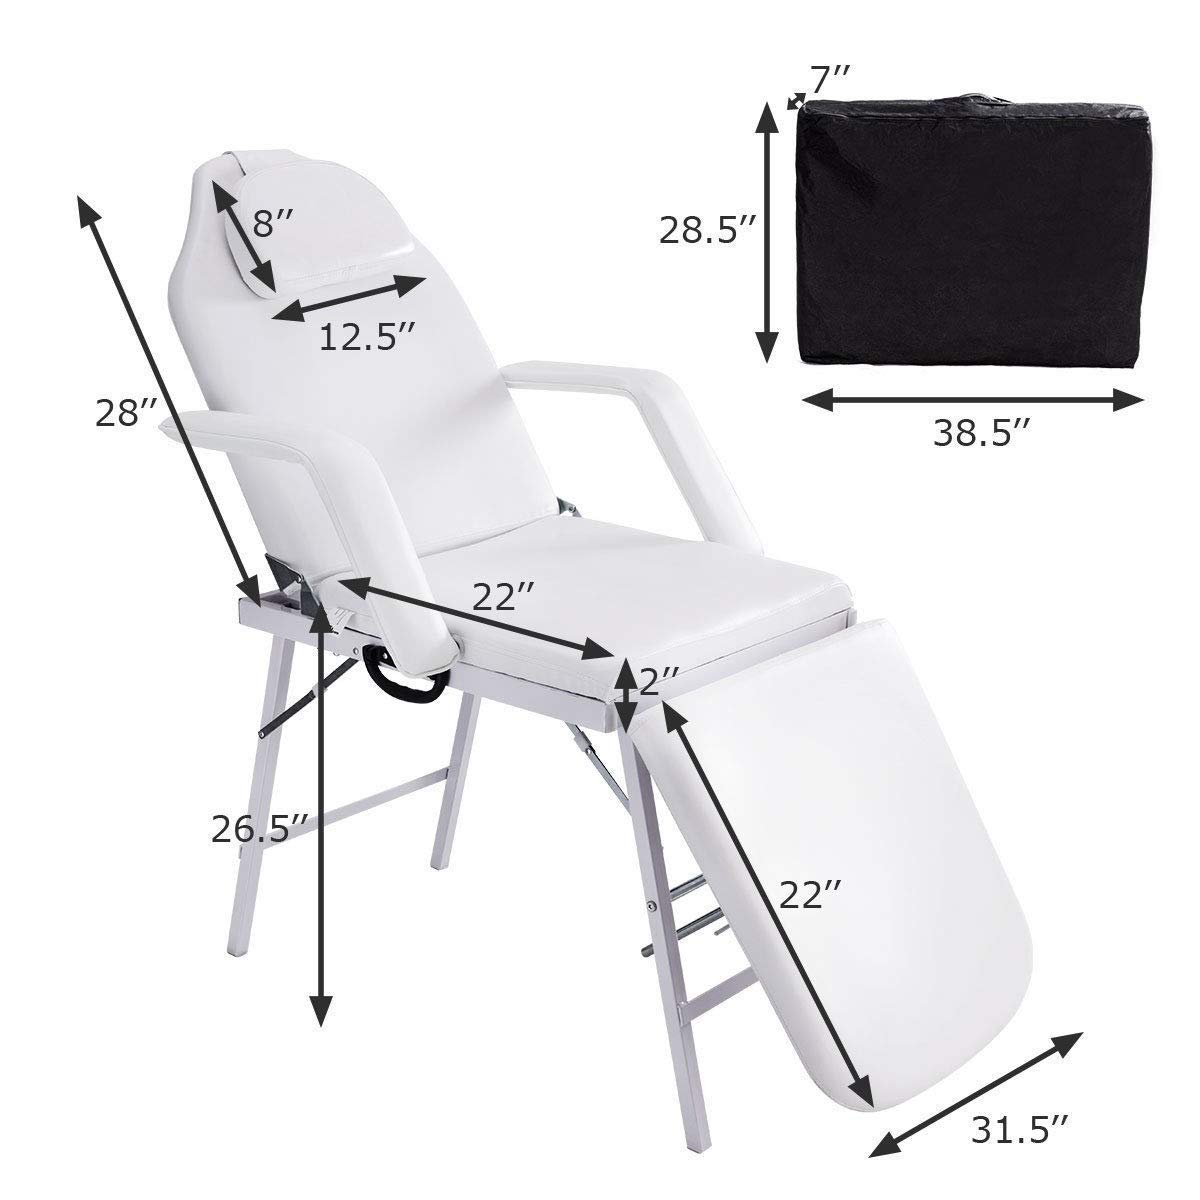 Adjustable Barber Spa Salon Massage Bed Facial Beauty Tattoo Chair White (73'') by Gentle Shower (Image #2)